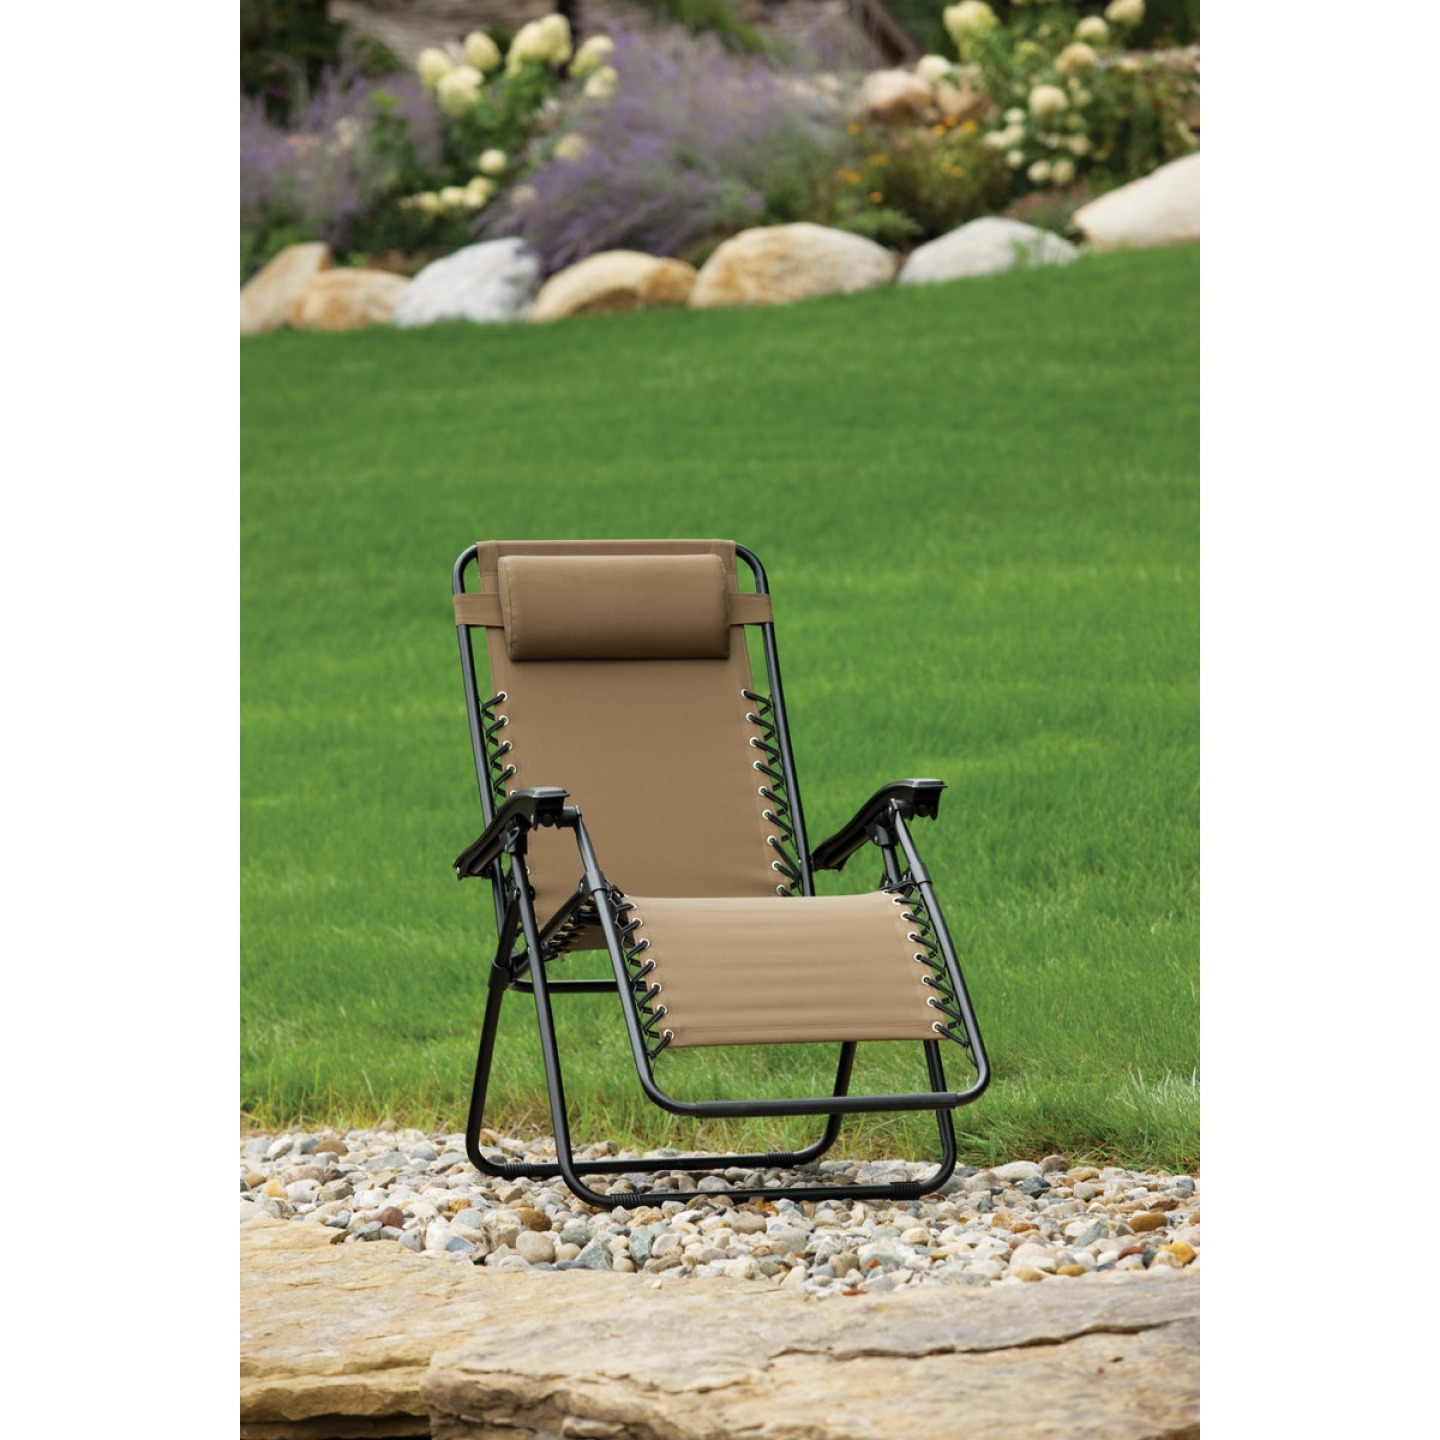 Outdoor Expressions Zero Gravity Relaxer Tan Convertible Lounge Chair Image 3